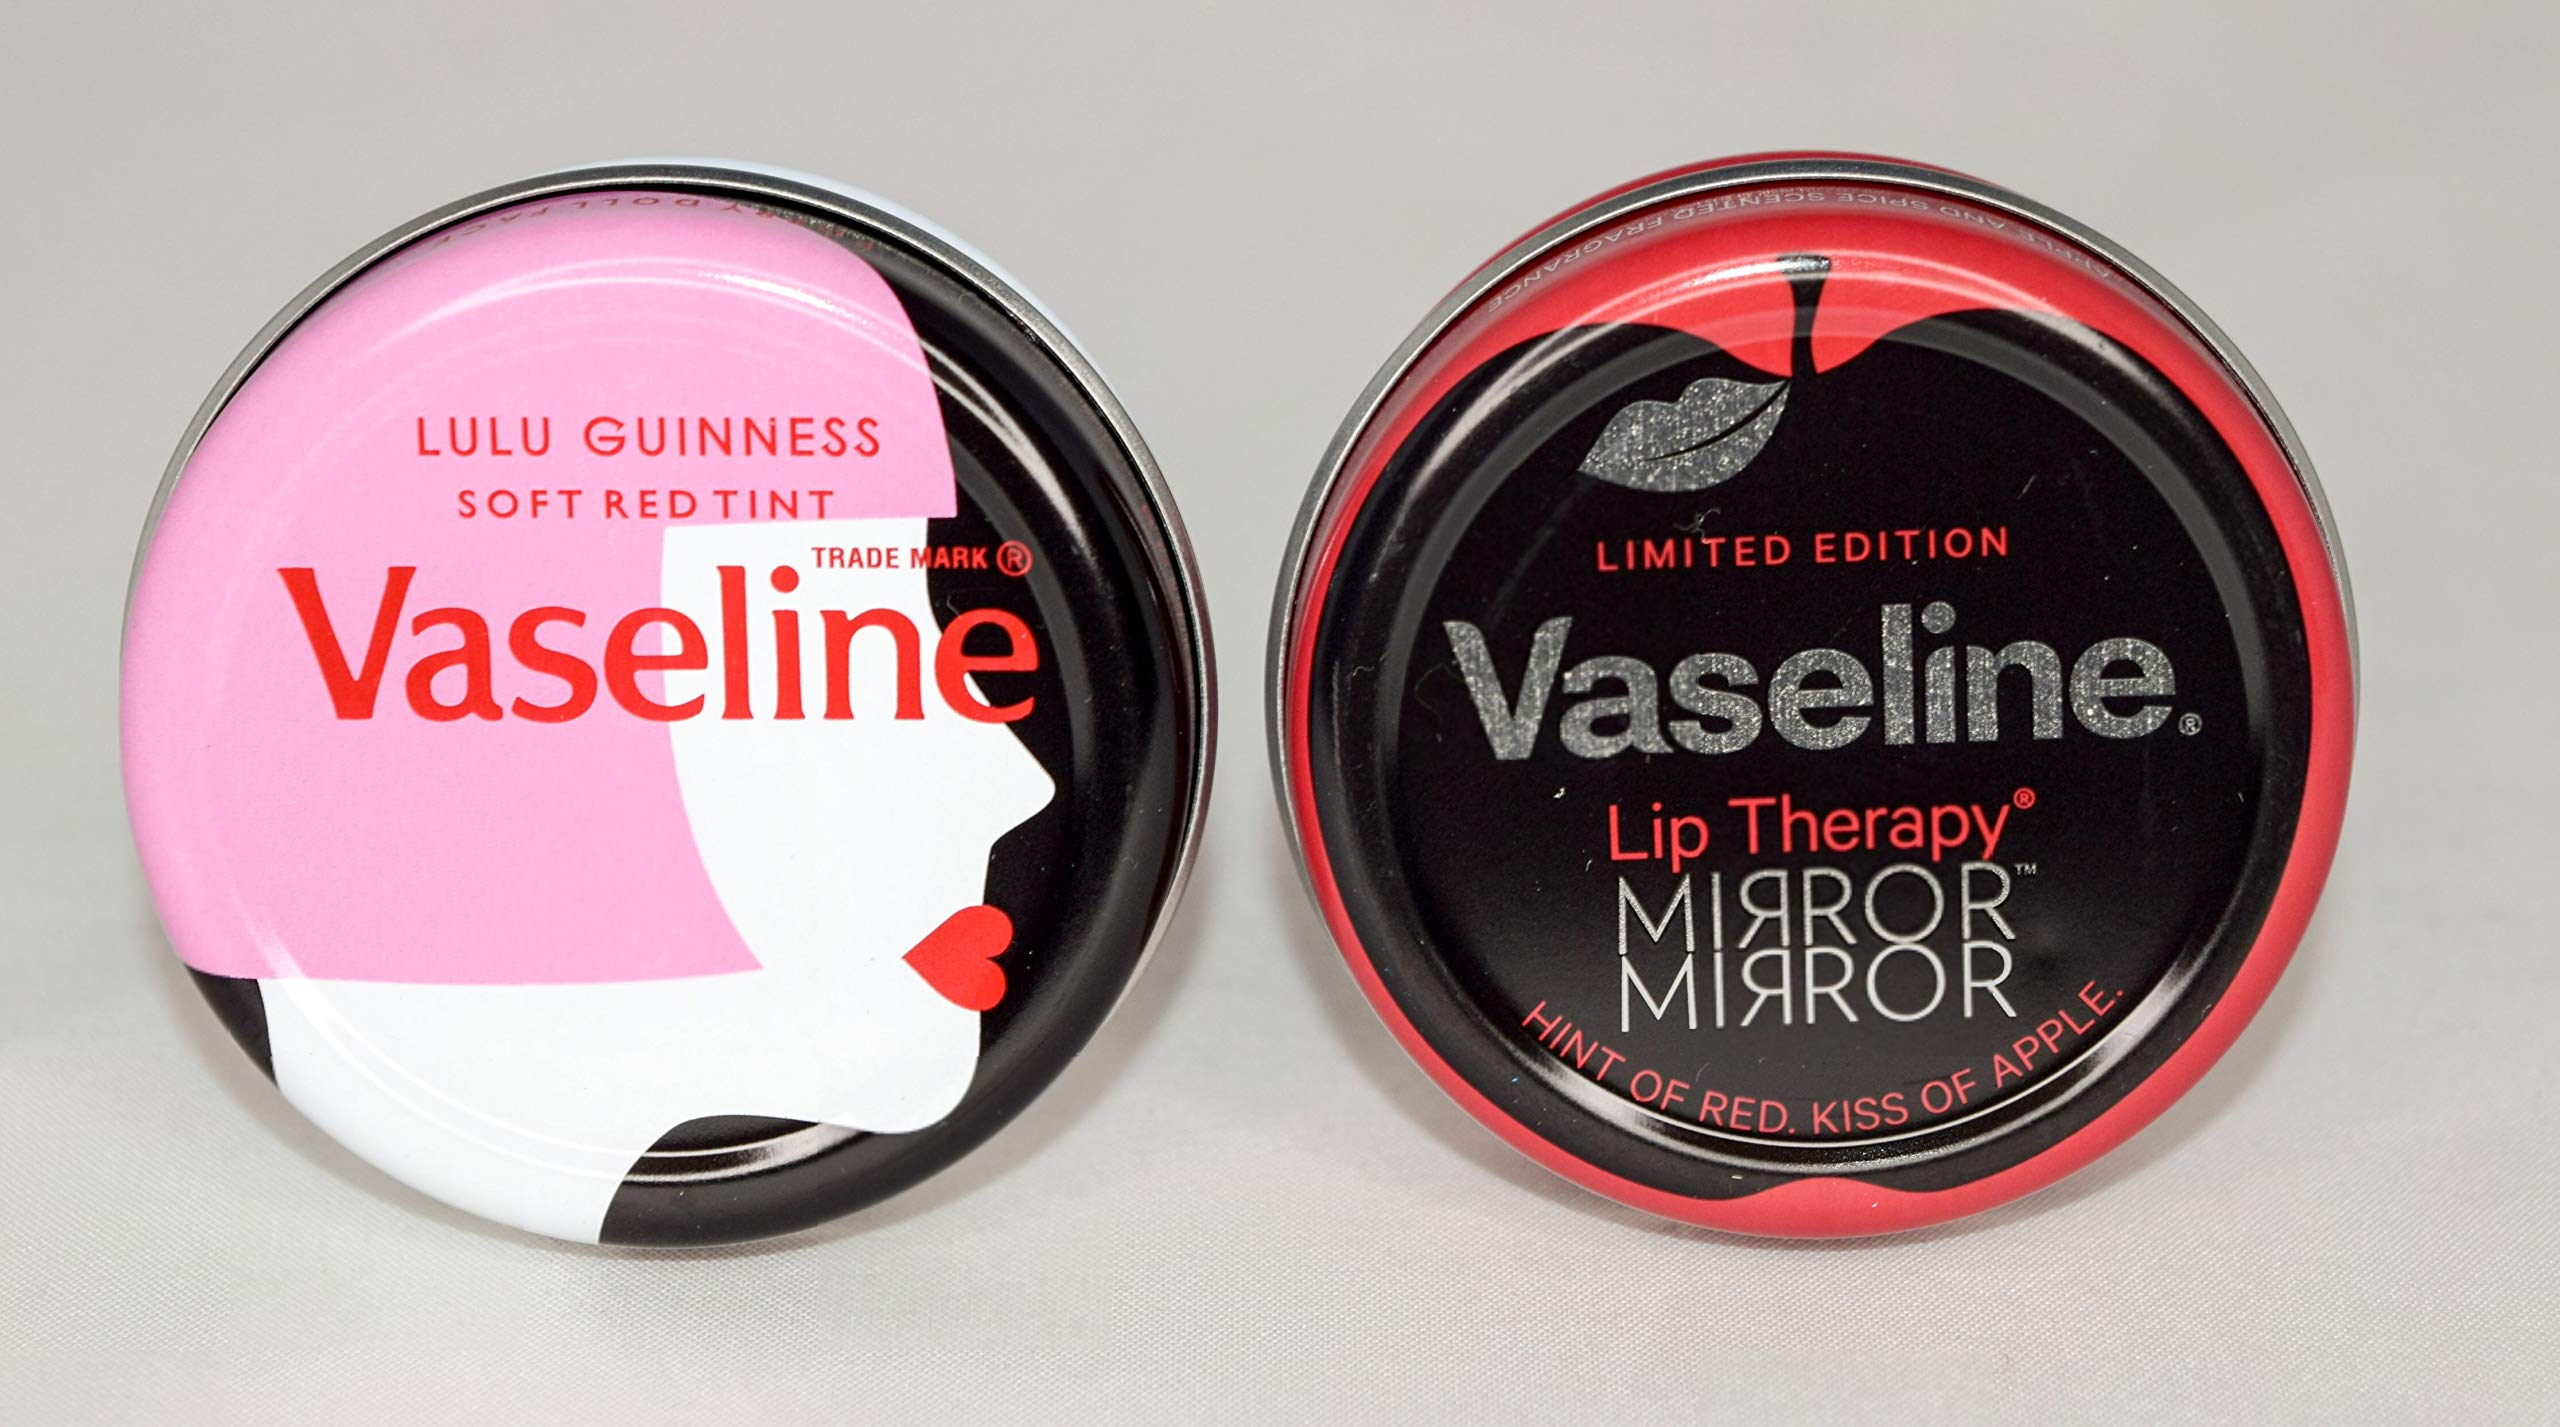 Vaseline Lip Therapy Mix Limited Edition Lulu Guinness +Mirror Mirror 20Gm (Mix Vaseline Limited Edition Lip Therapy Lulu Guinness +Mirror Mirror, 24X20Gm)